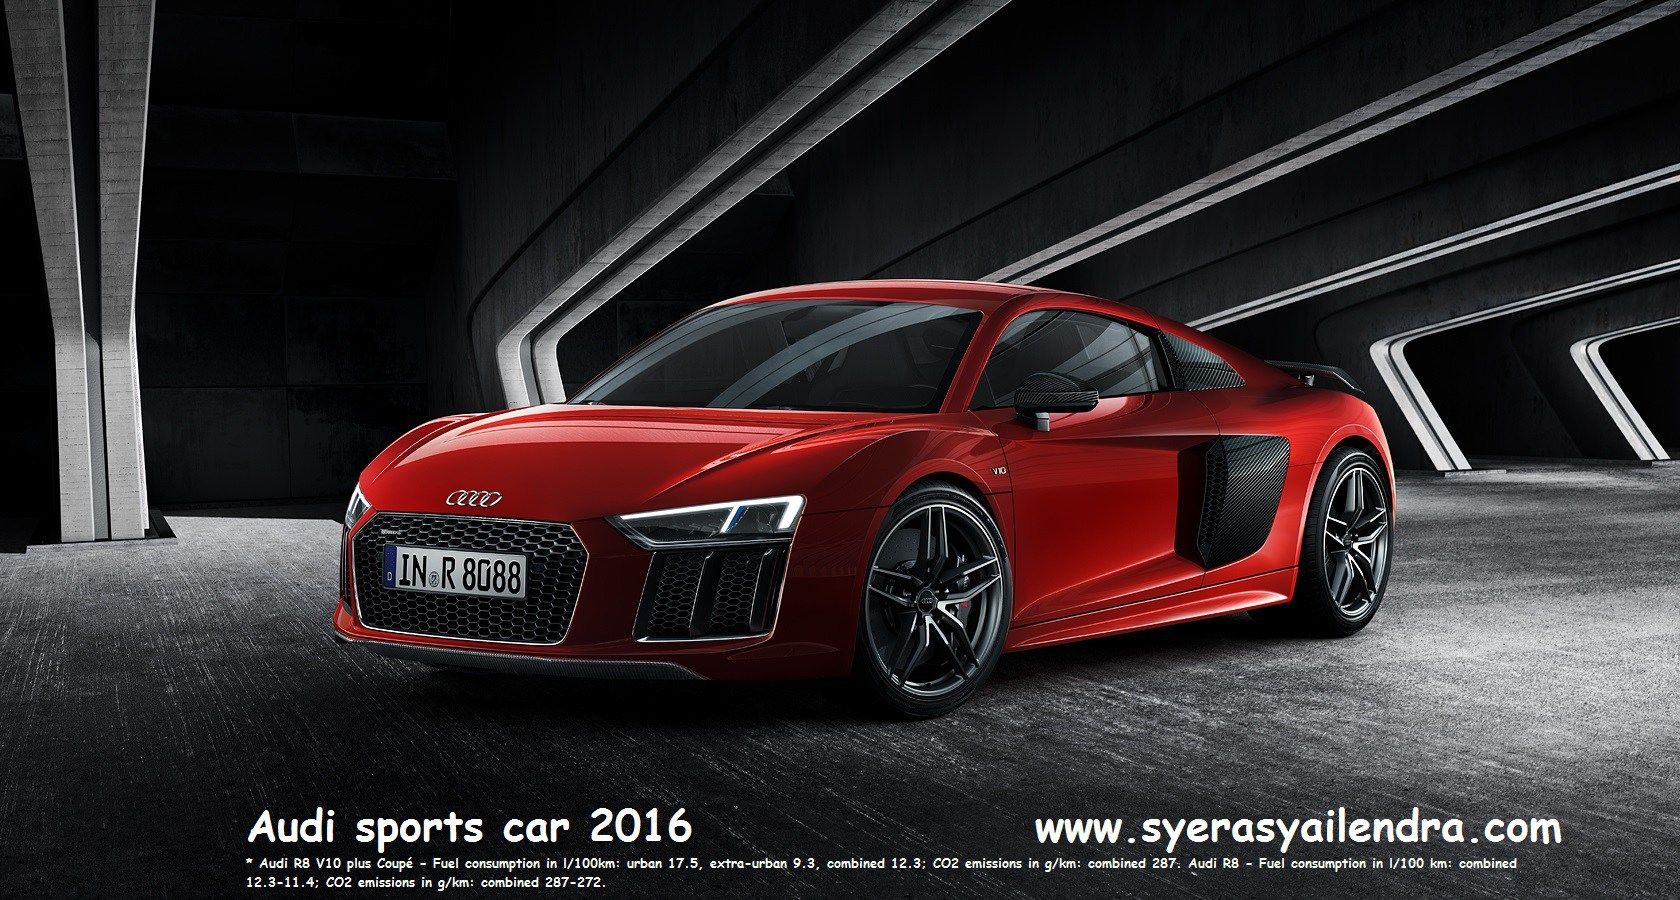 The best audi sports car 2016 images collection related to audi sports car 2016 audi